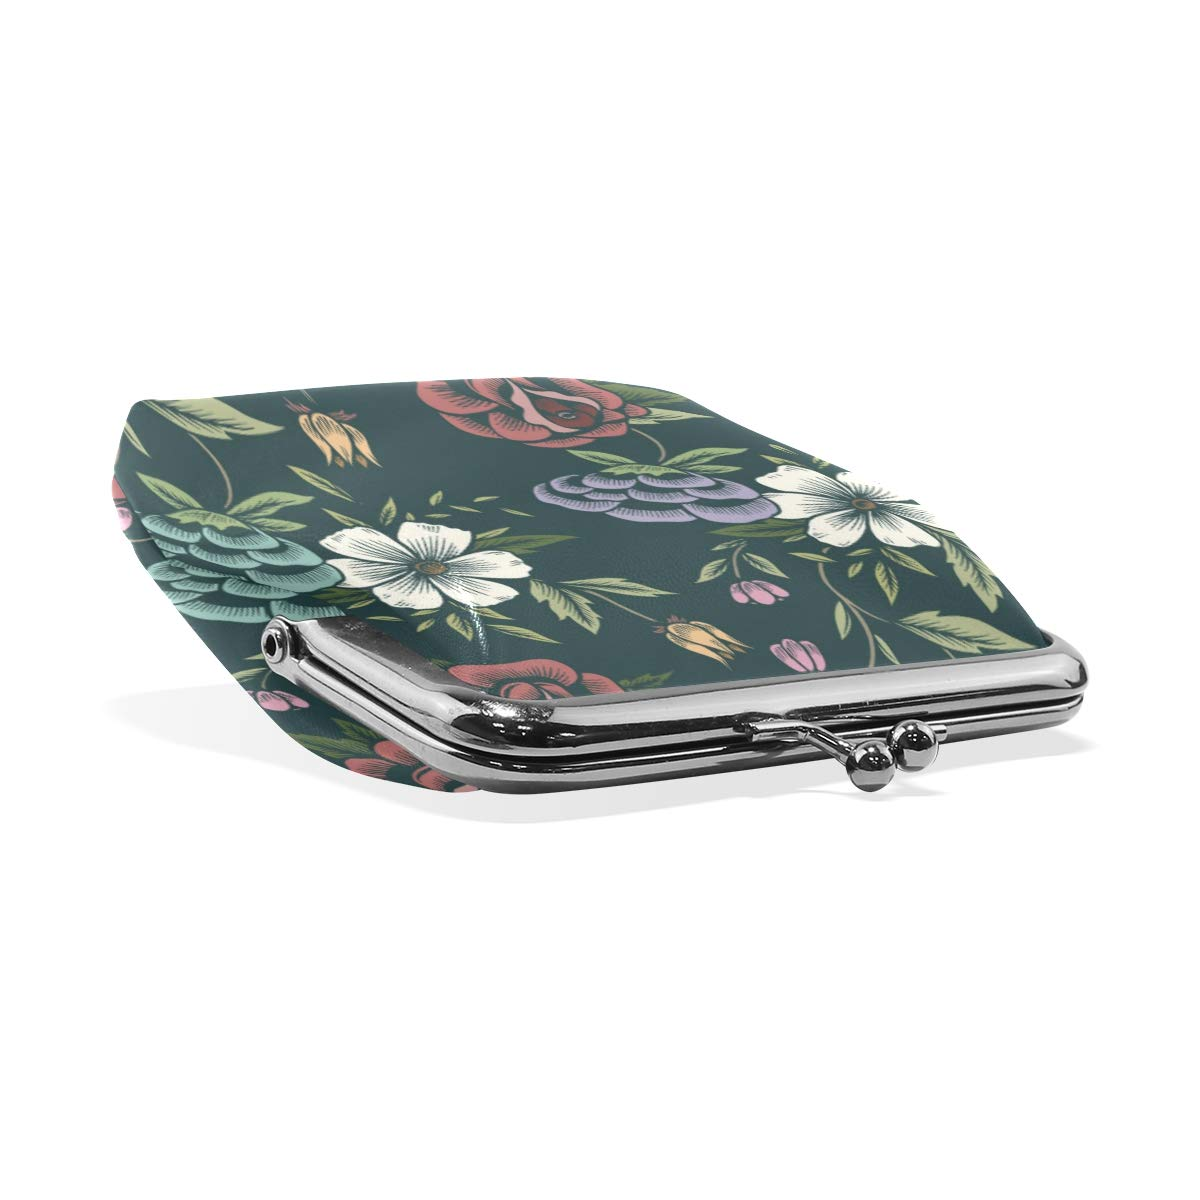 TIKISMILE Floral Pattern Leather Fashion Buckle Cute Coin Purse Bags Wallet